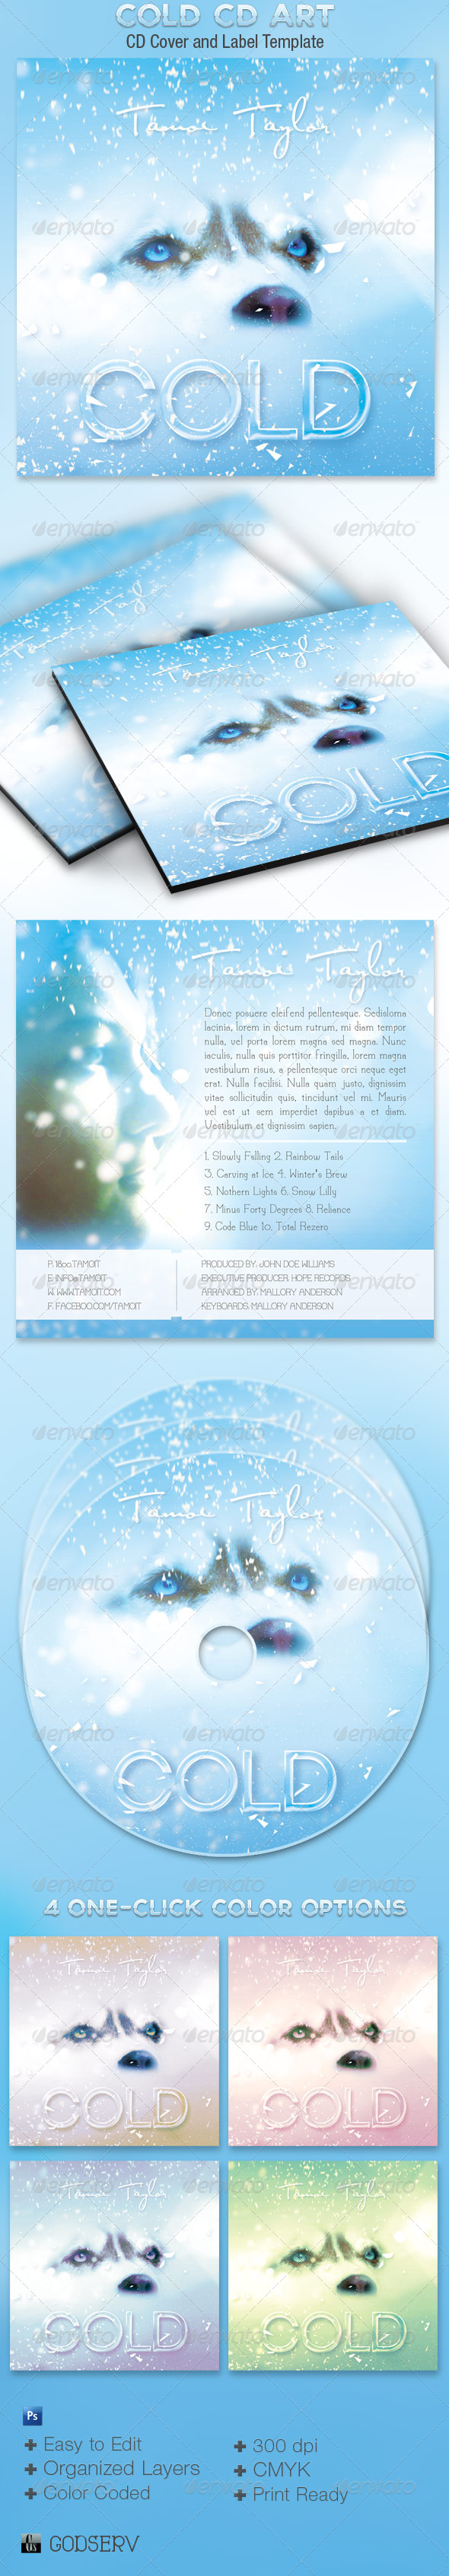 Cold CD Artwork Template - CD & DVD artwork Print Templates